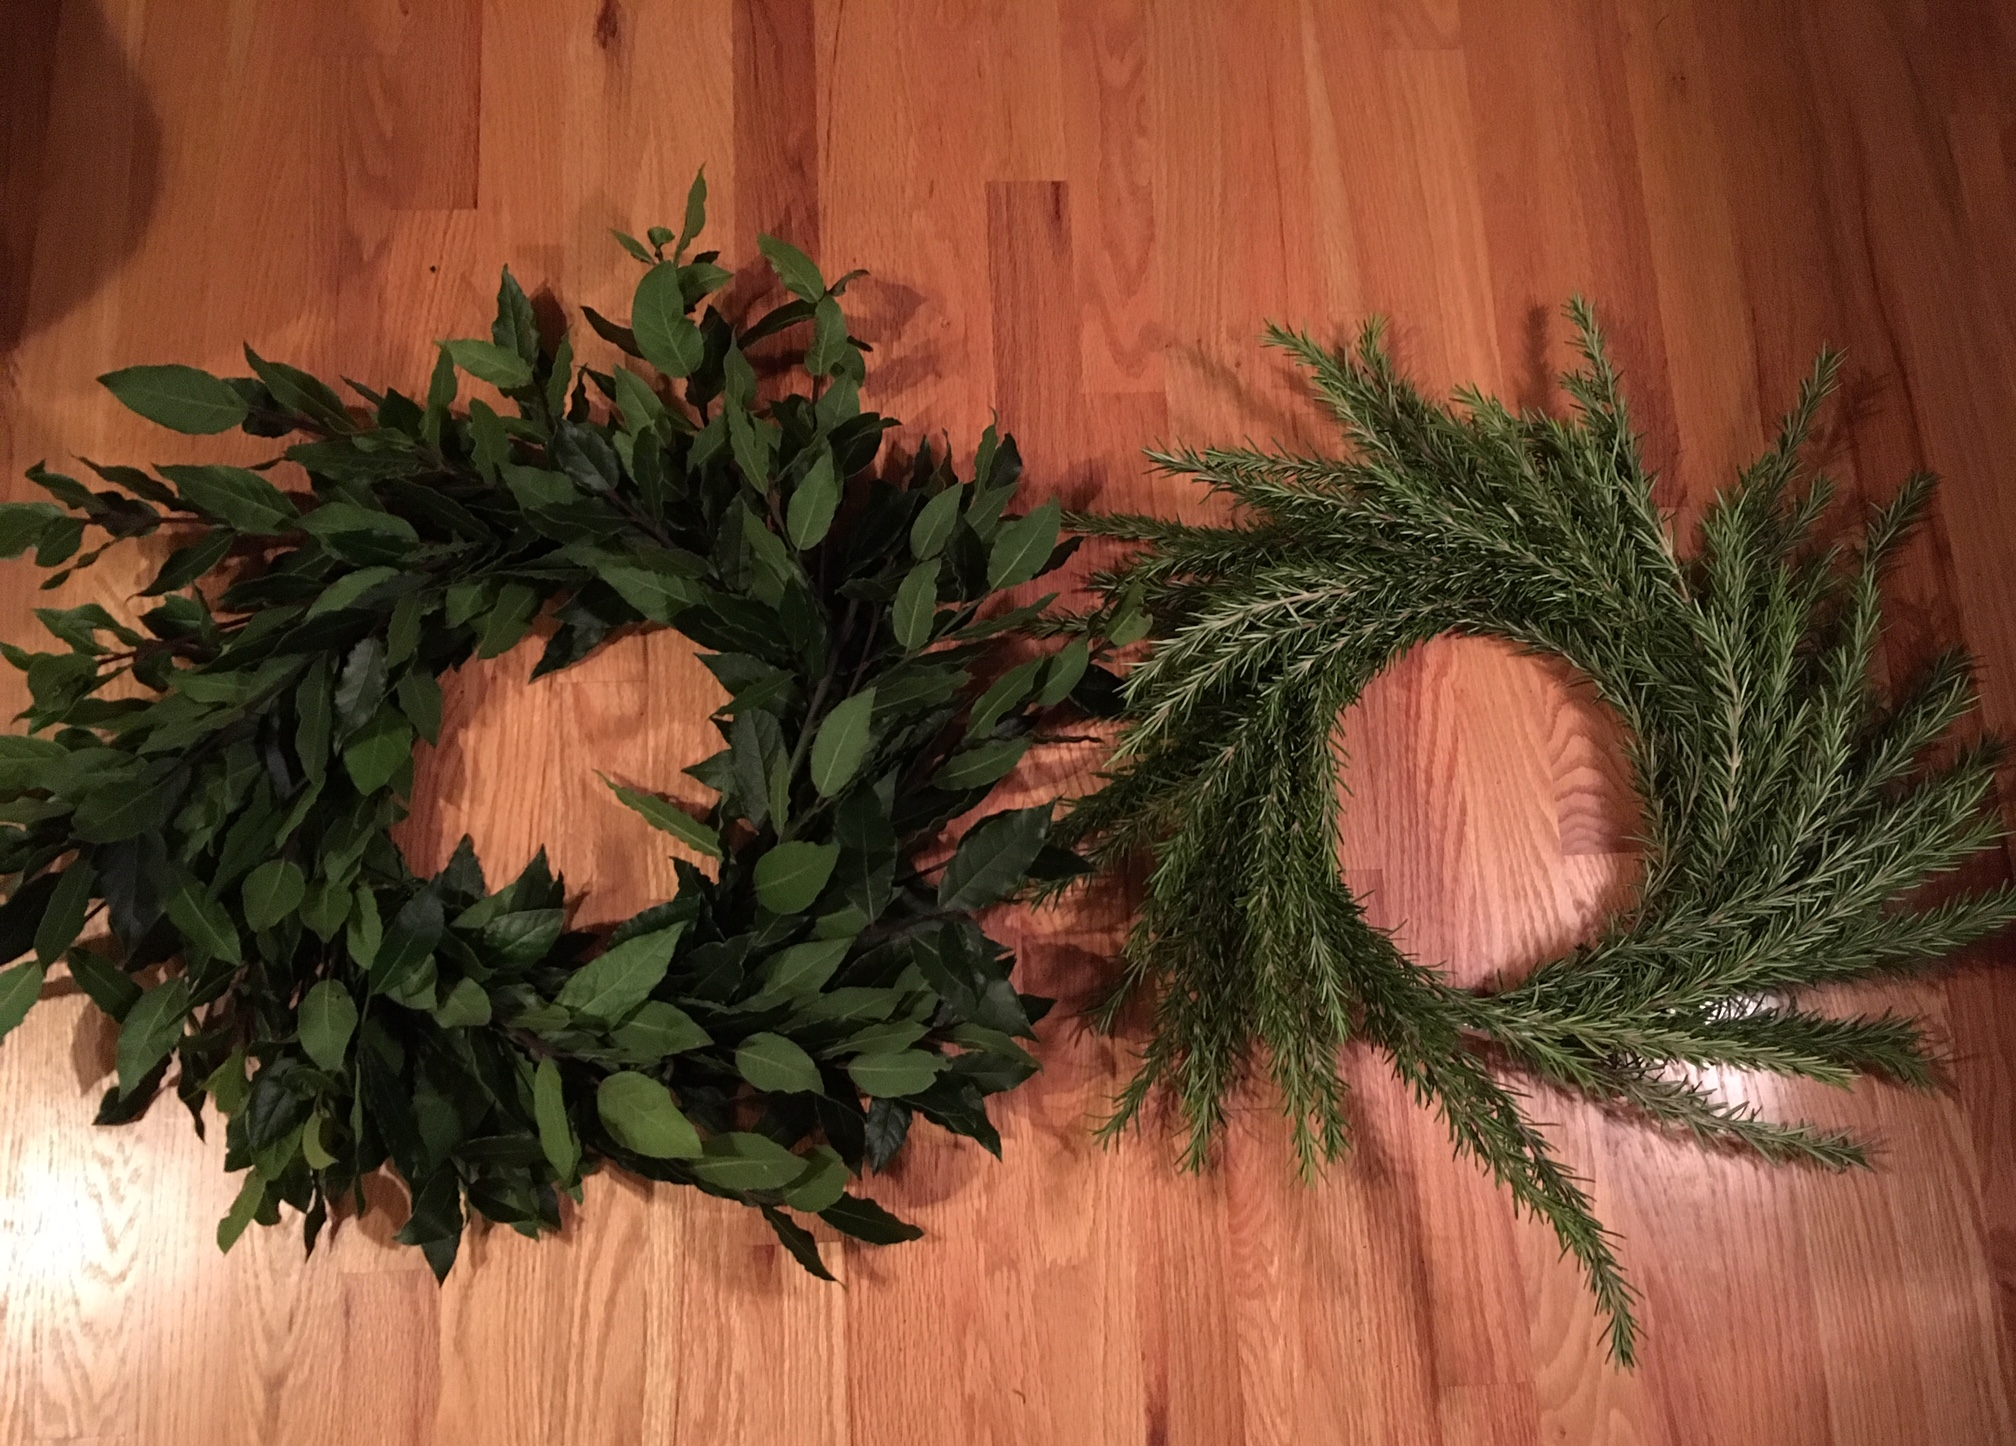 Build Your Own Wreath using the Plastic Wrap Method